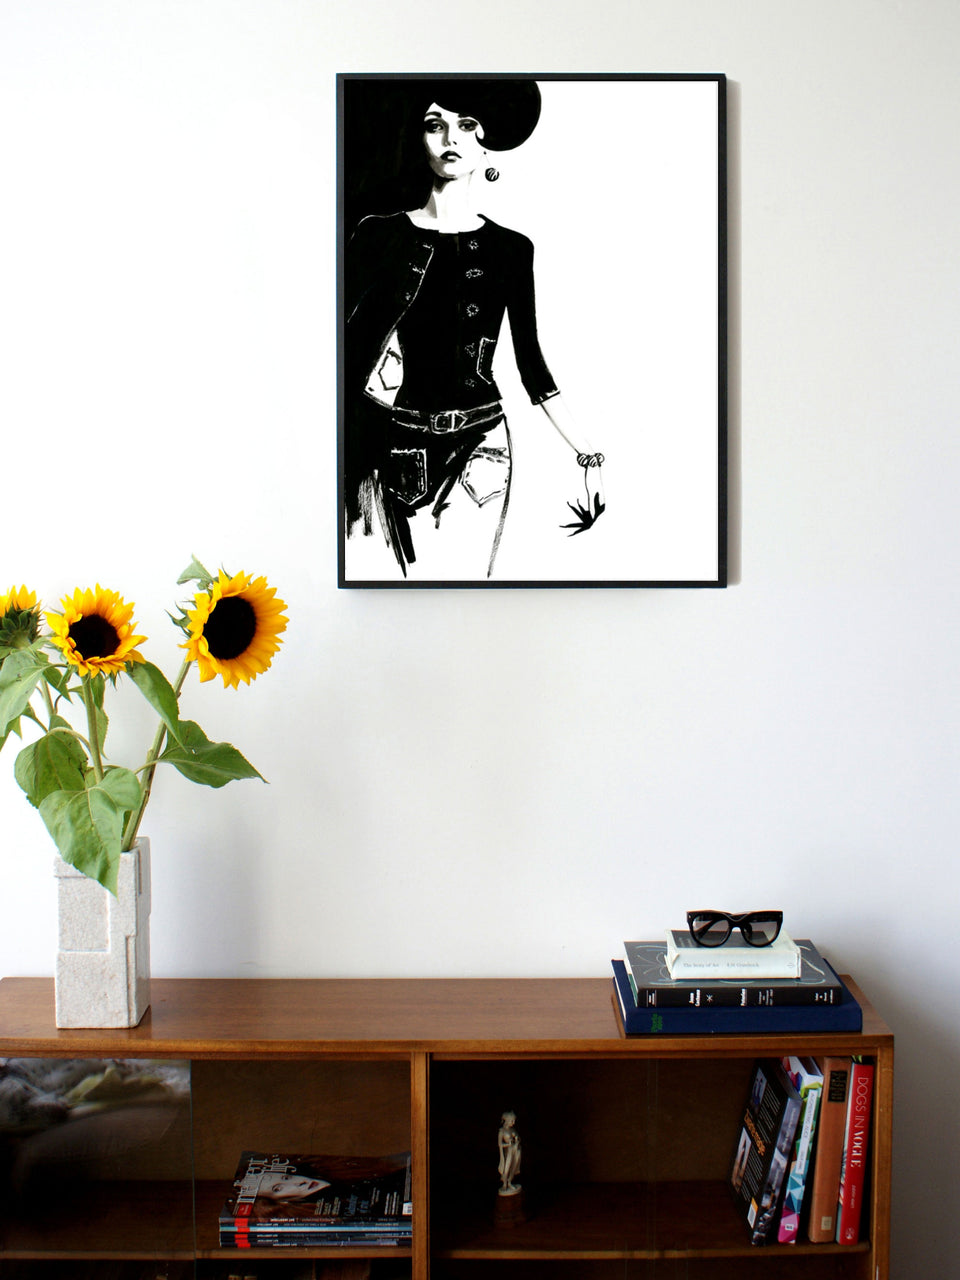 Fashion illustration print of Twin-set by Sjoukje Bierma - woman walking - 60 x 80 cm framed